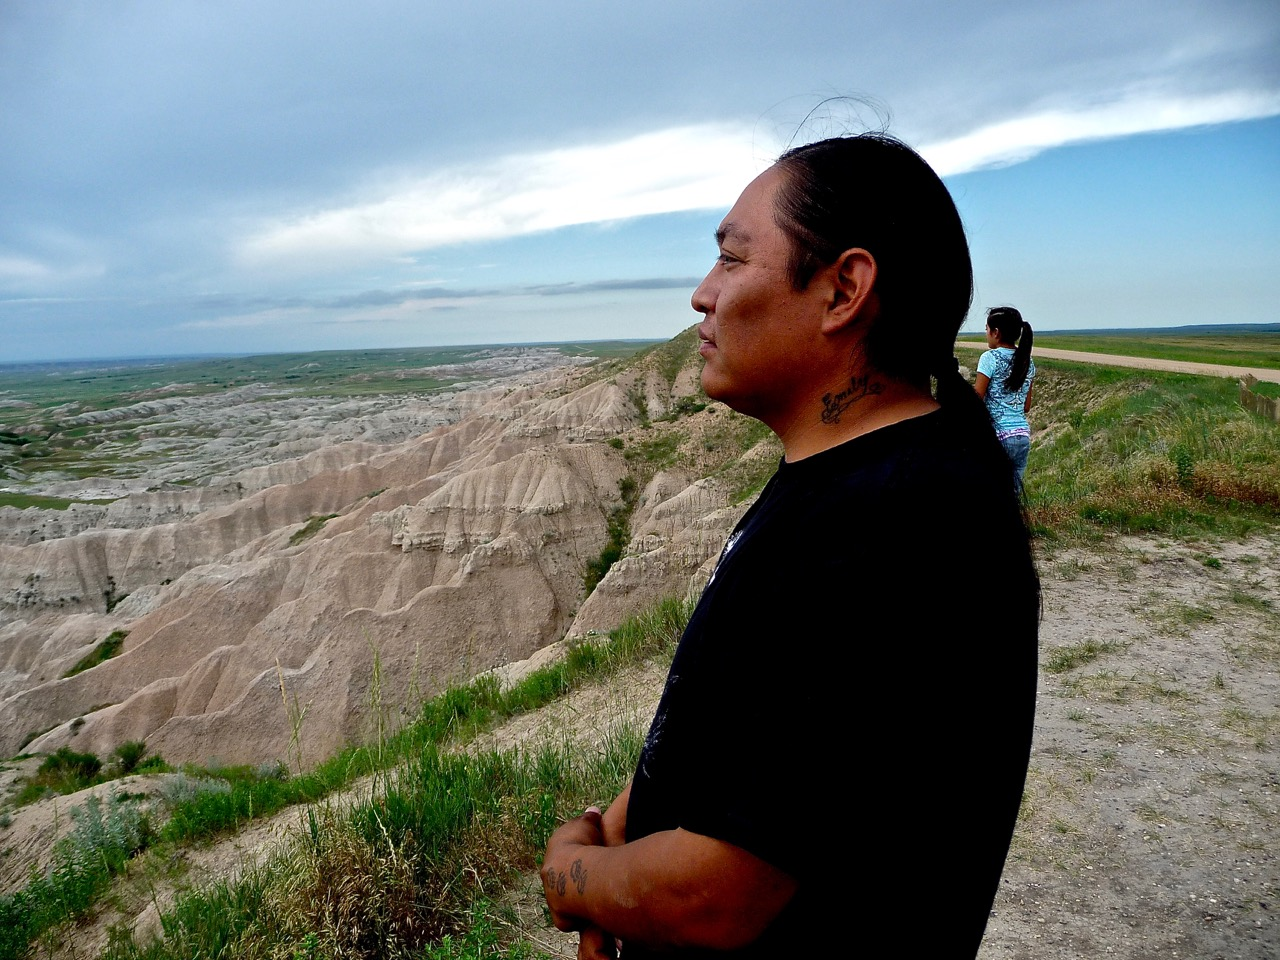 Mike having some quiet thoughts, The Badlands, South Dakota, USA, 2011.